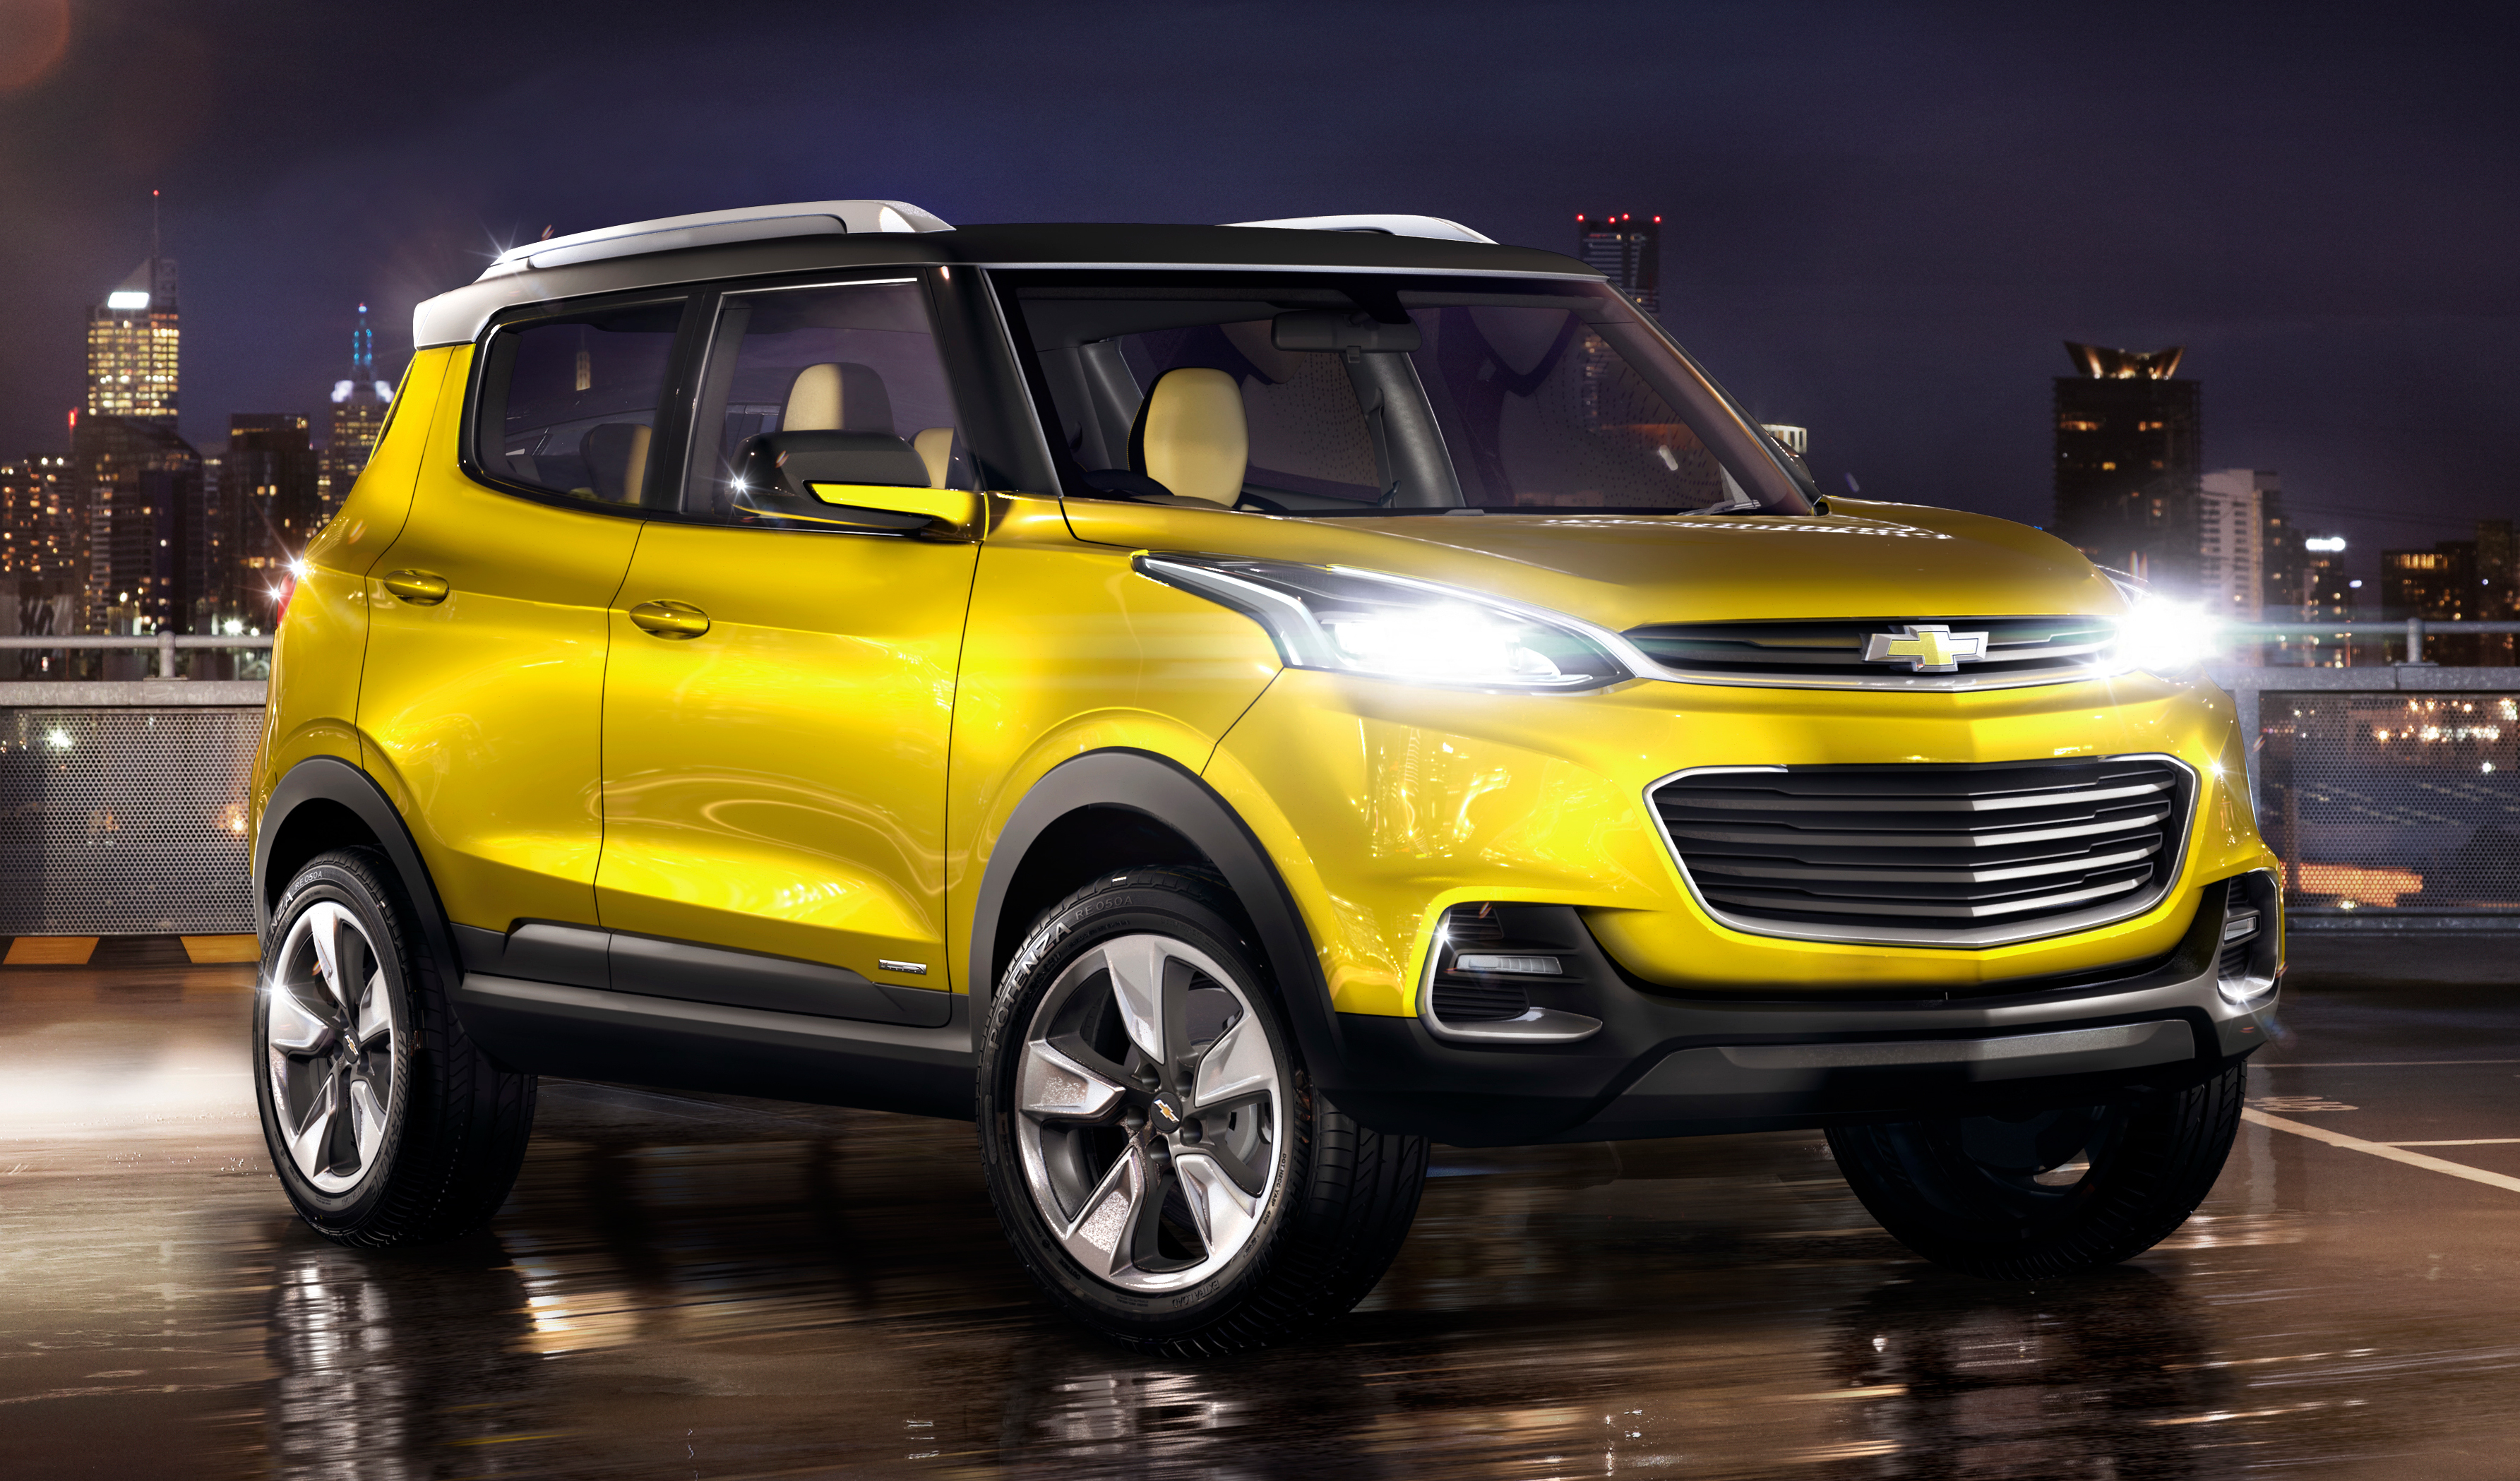 2018 Chevrolet Agile | Car Photos Catalog 2019